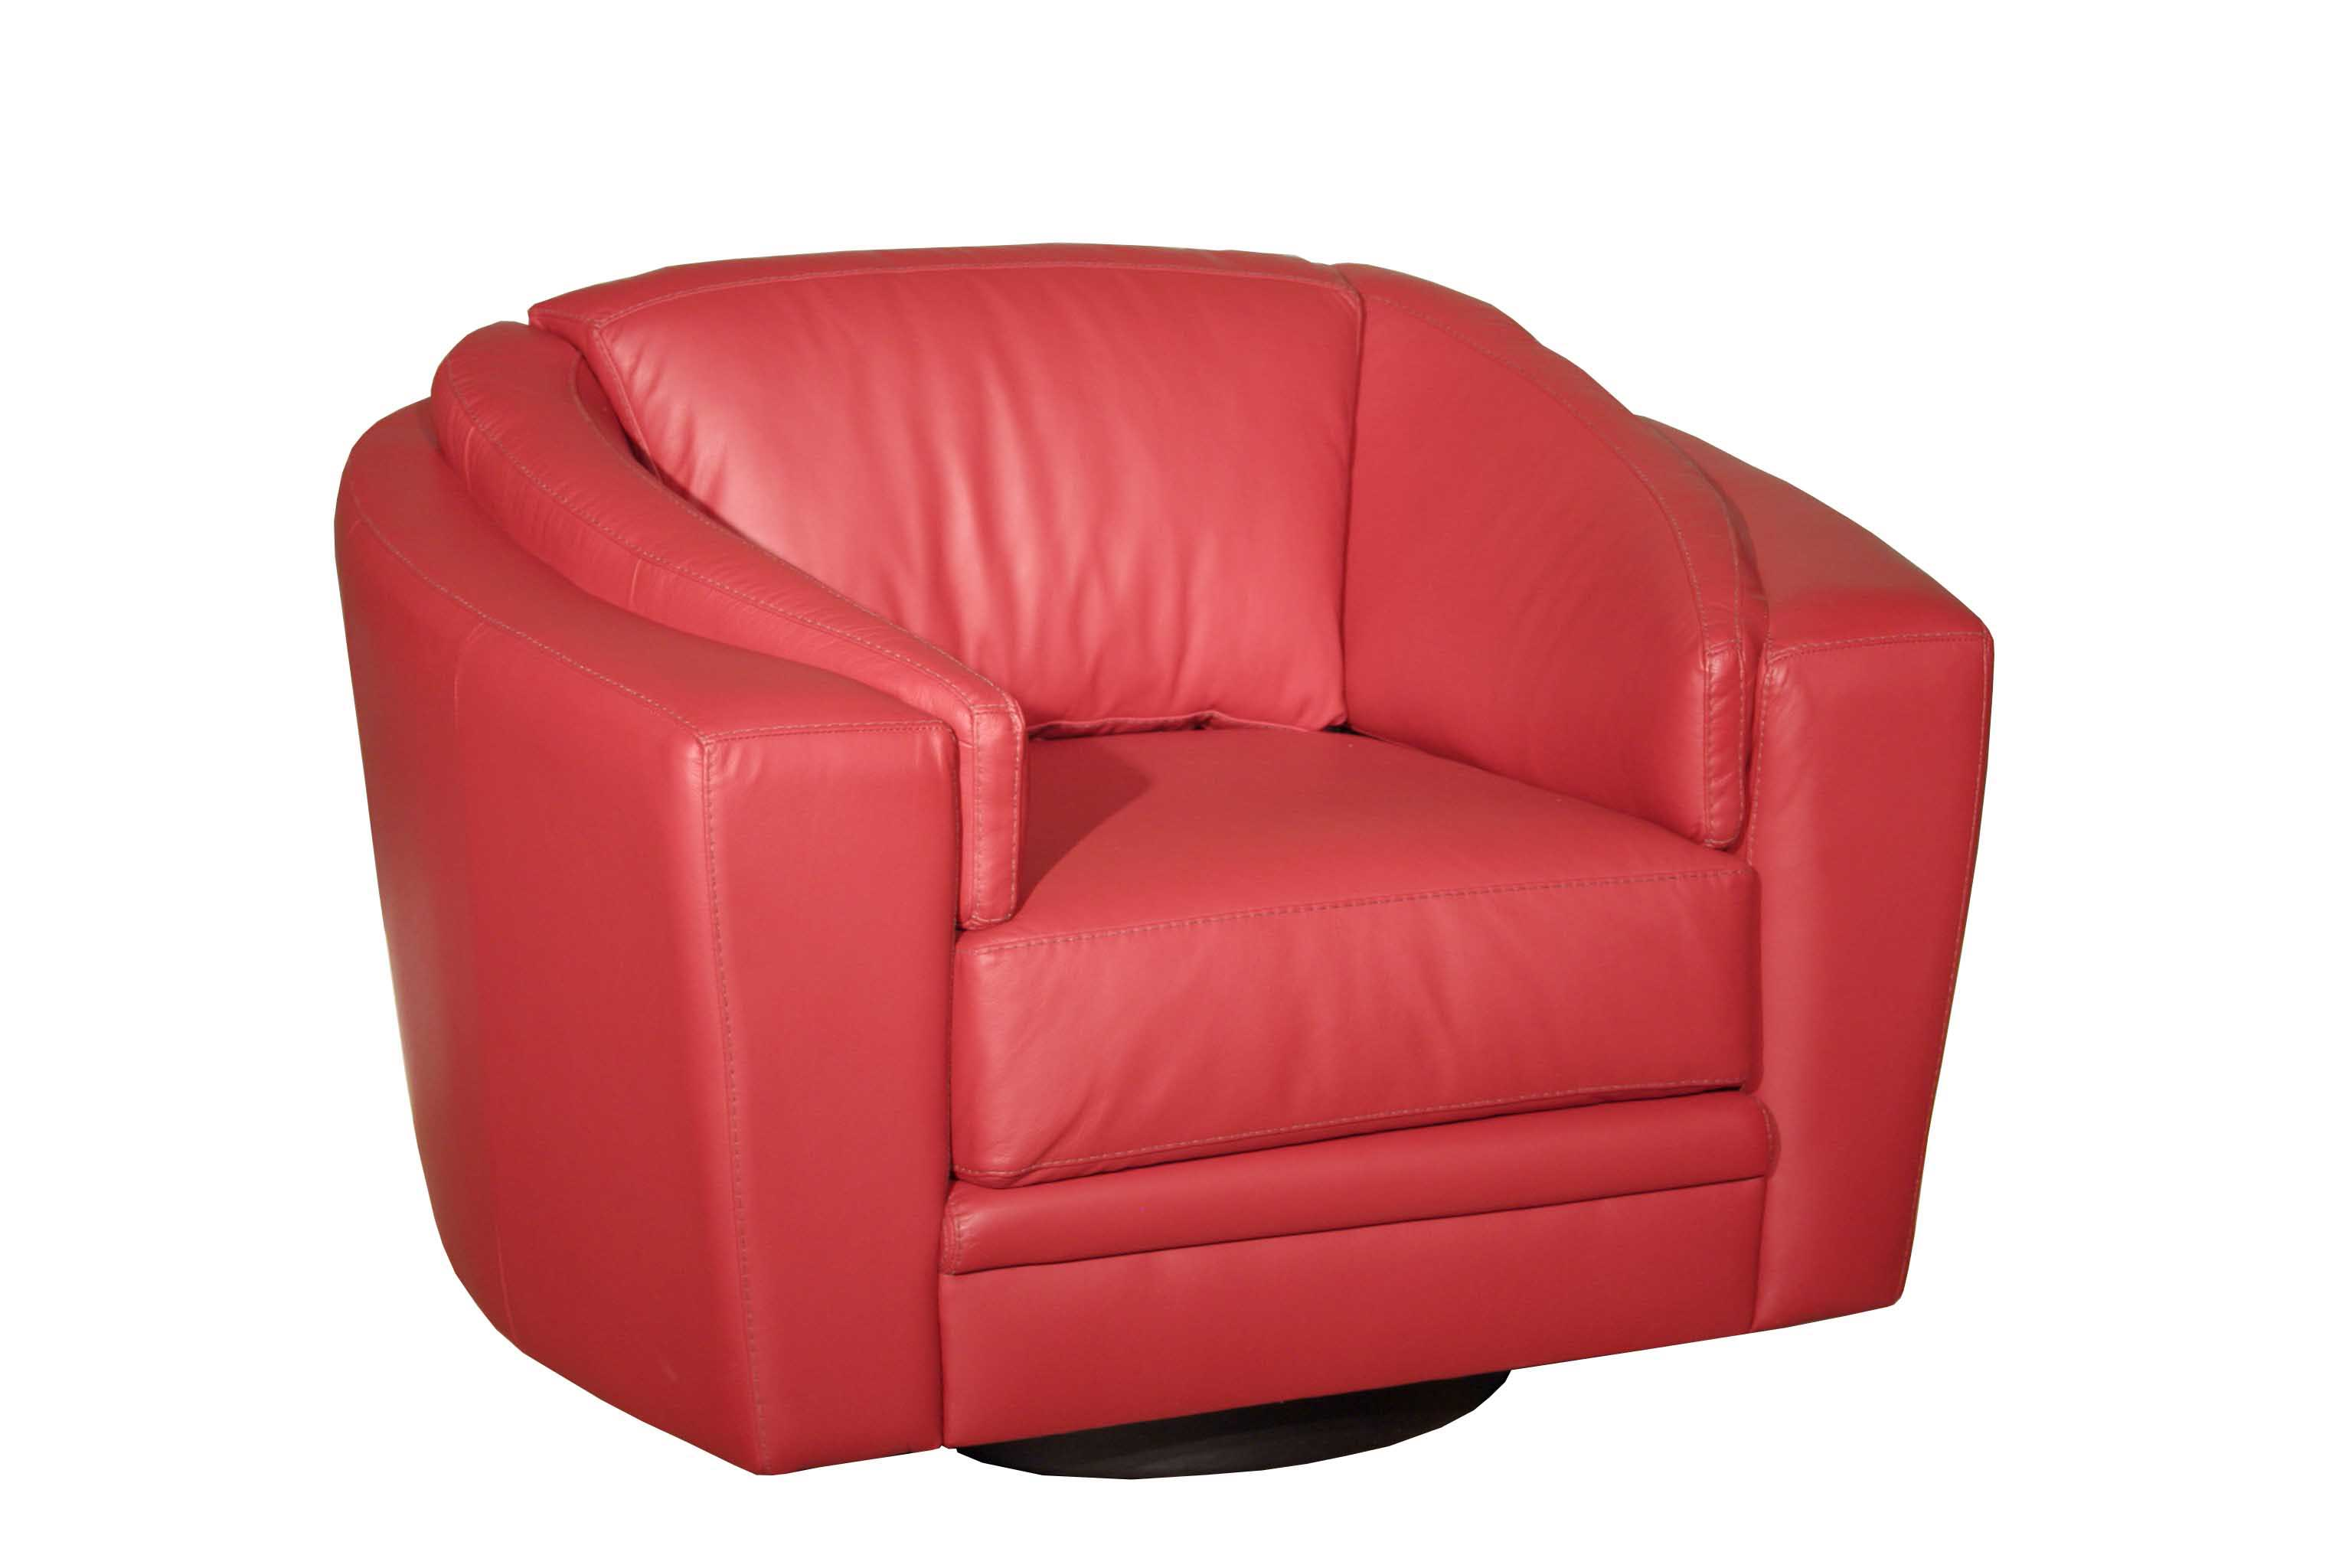 leather swivel chair slip covers at target chairs for home office user